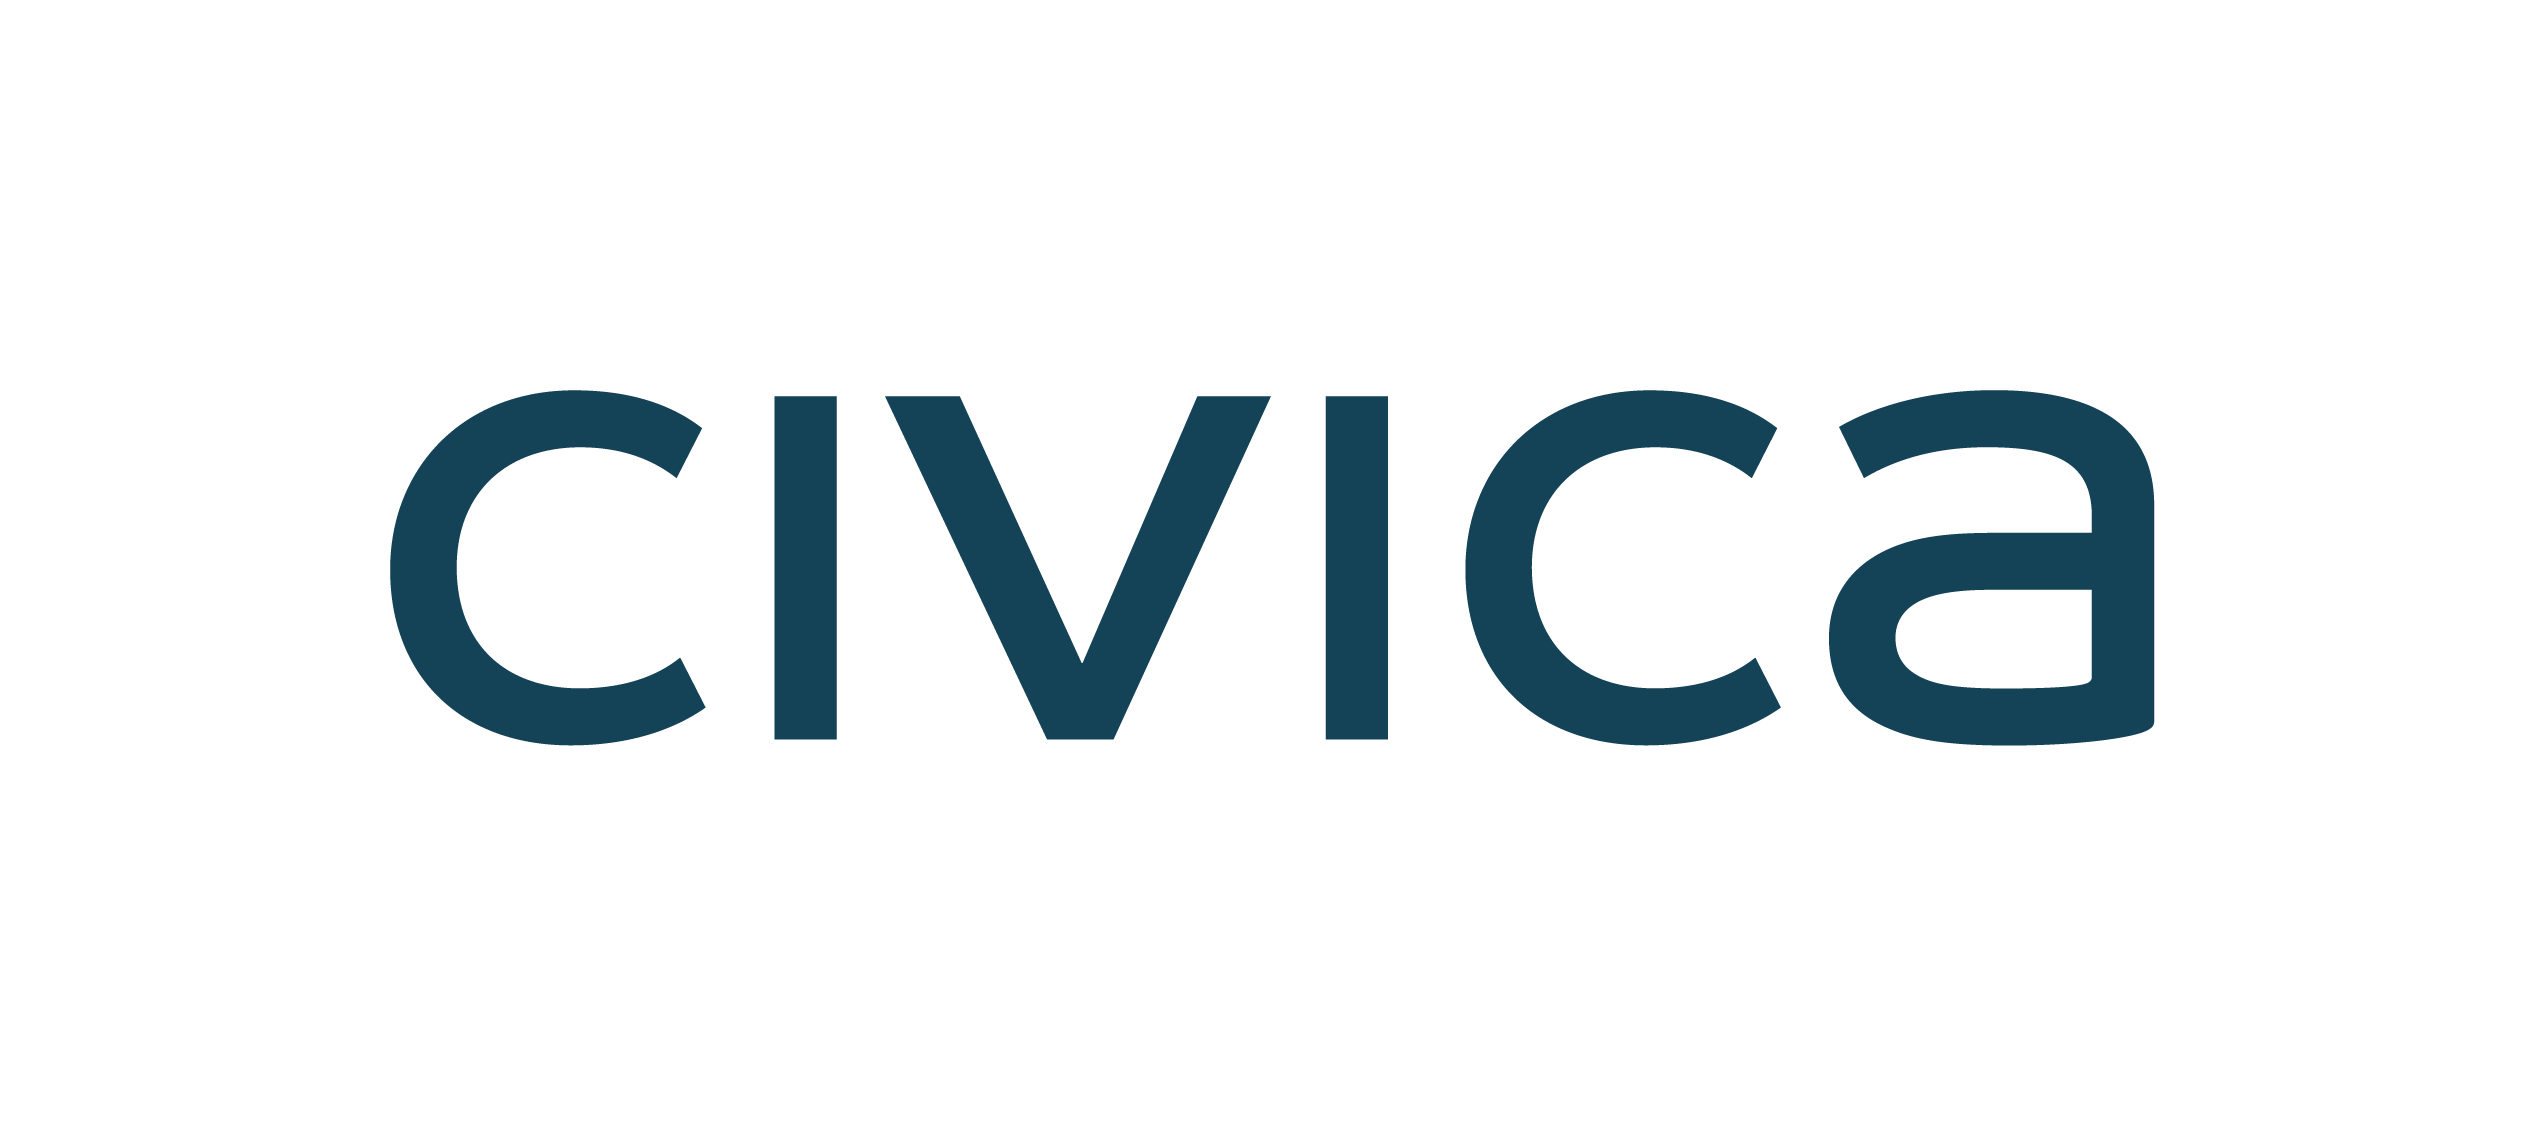 civica logo dark teal no strapline - cmyk